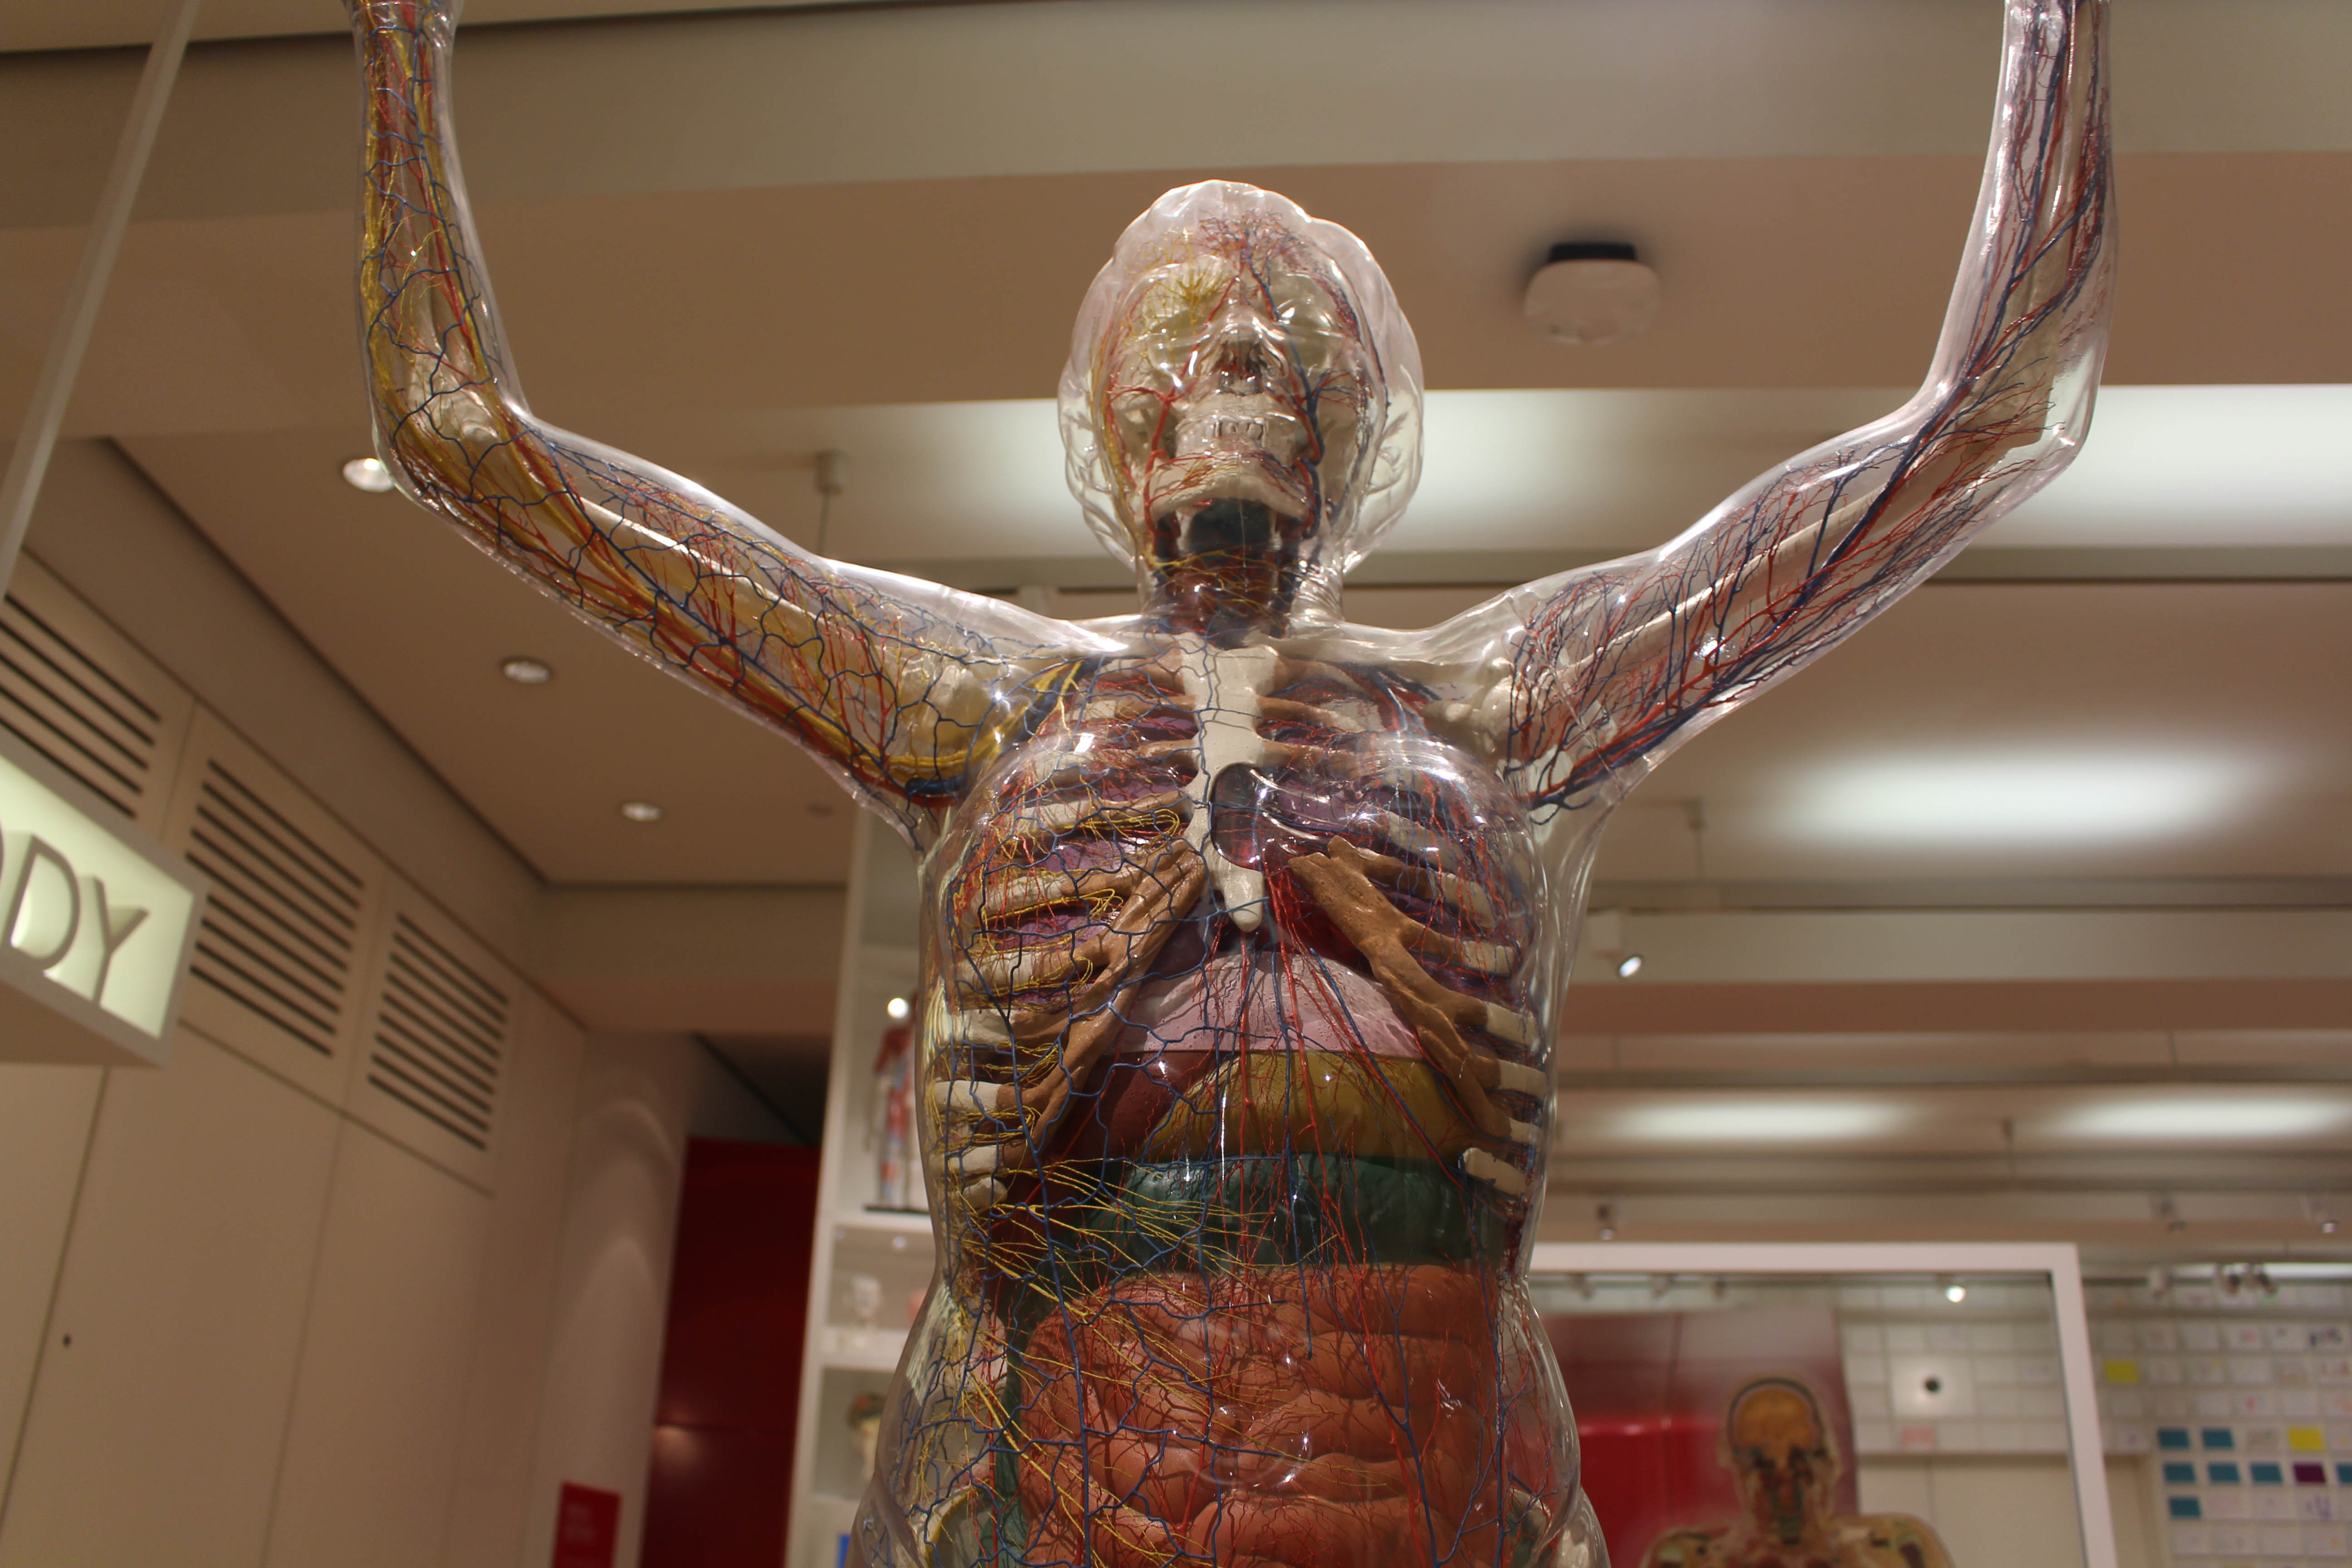 The Medicine Now exhibition at the Wellcome Trust